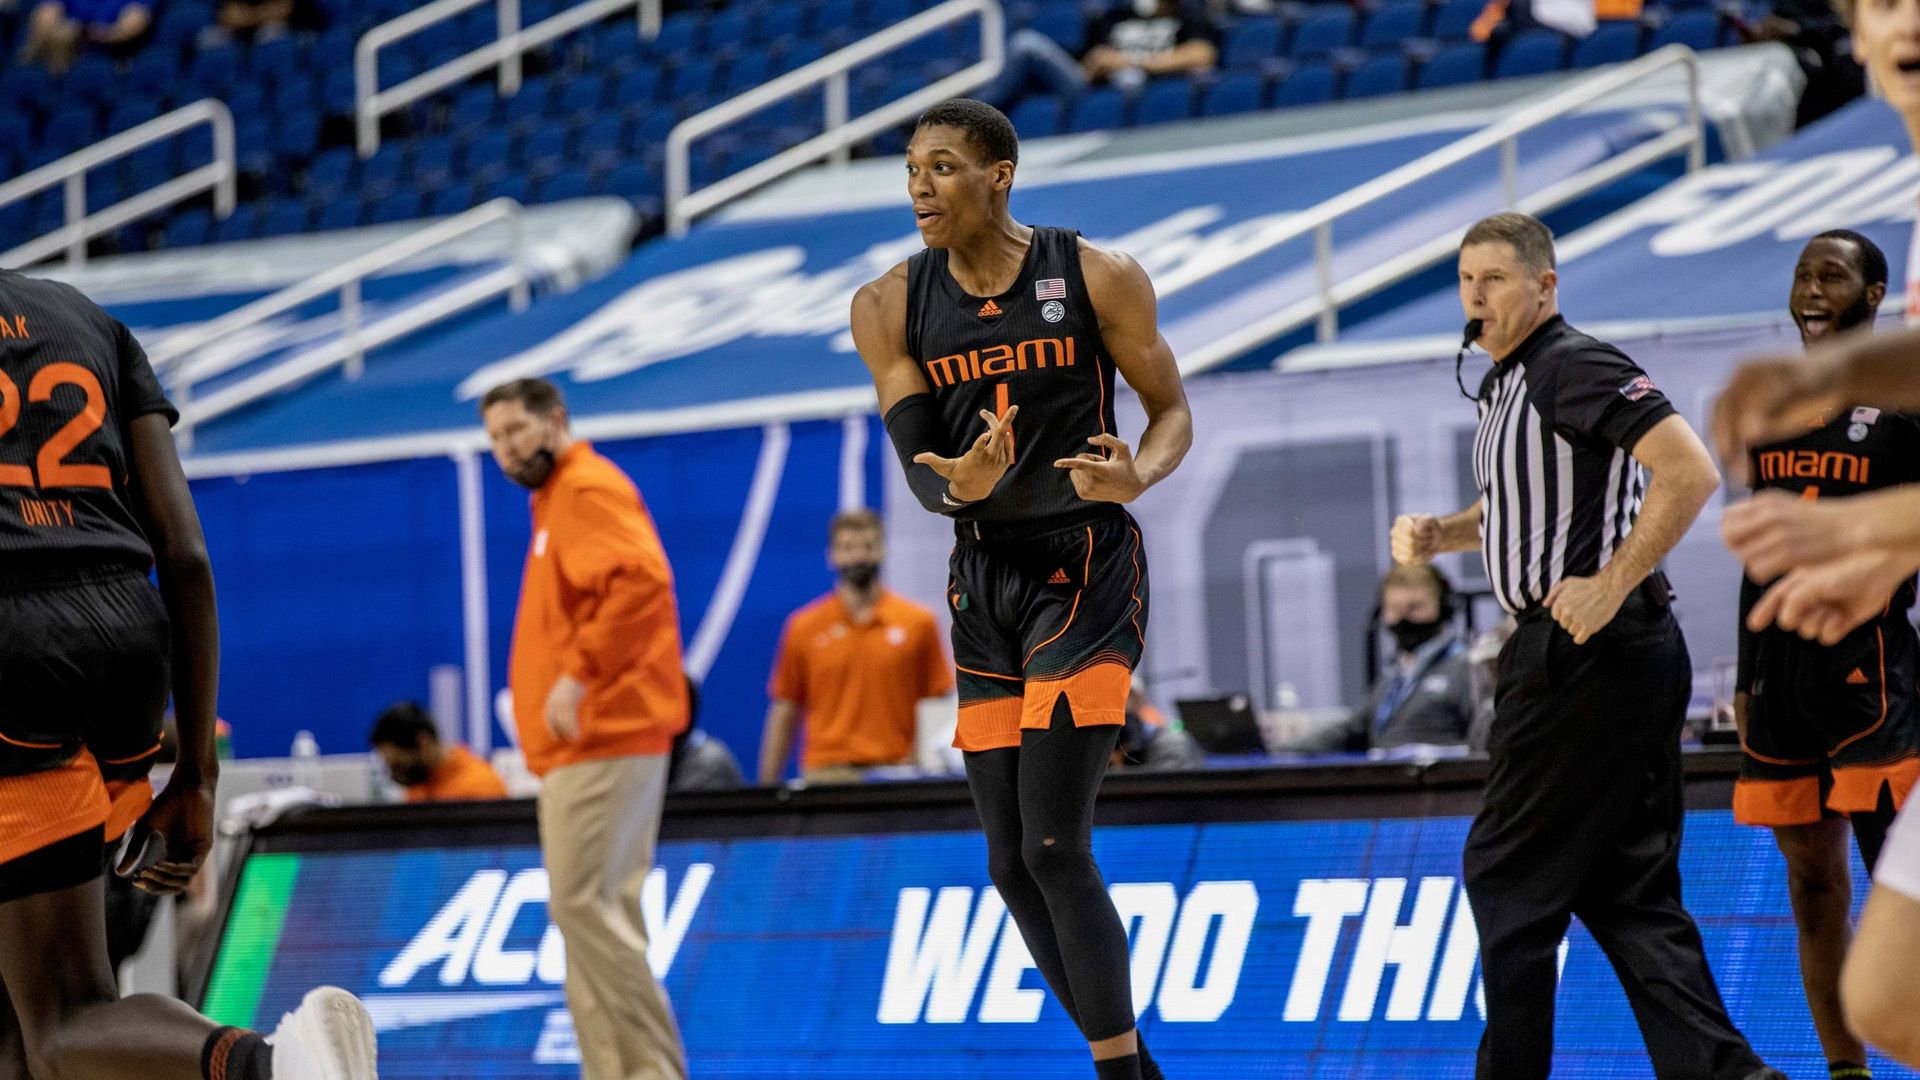 MBB Knocks off Fifth-Seeded Clemson, 67-64